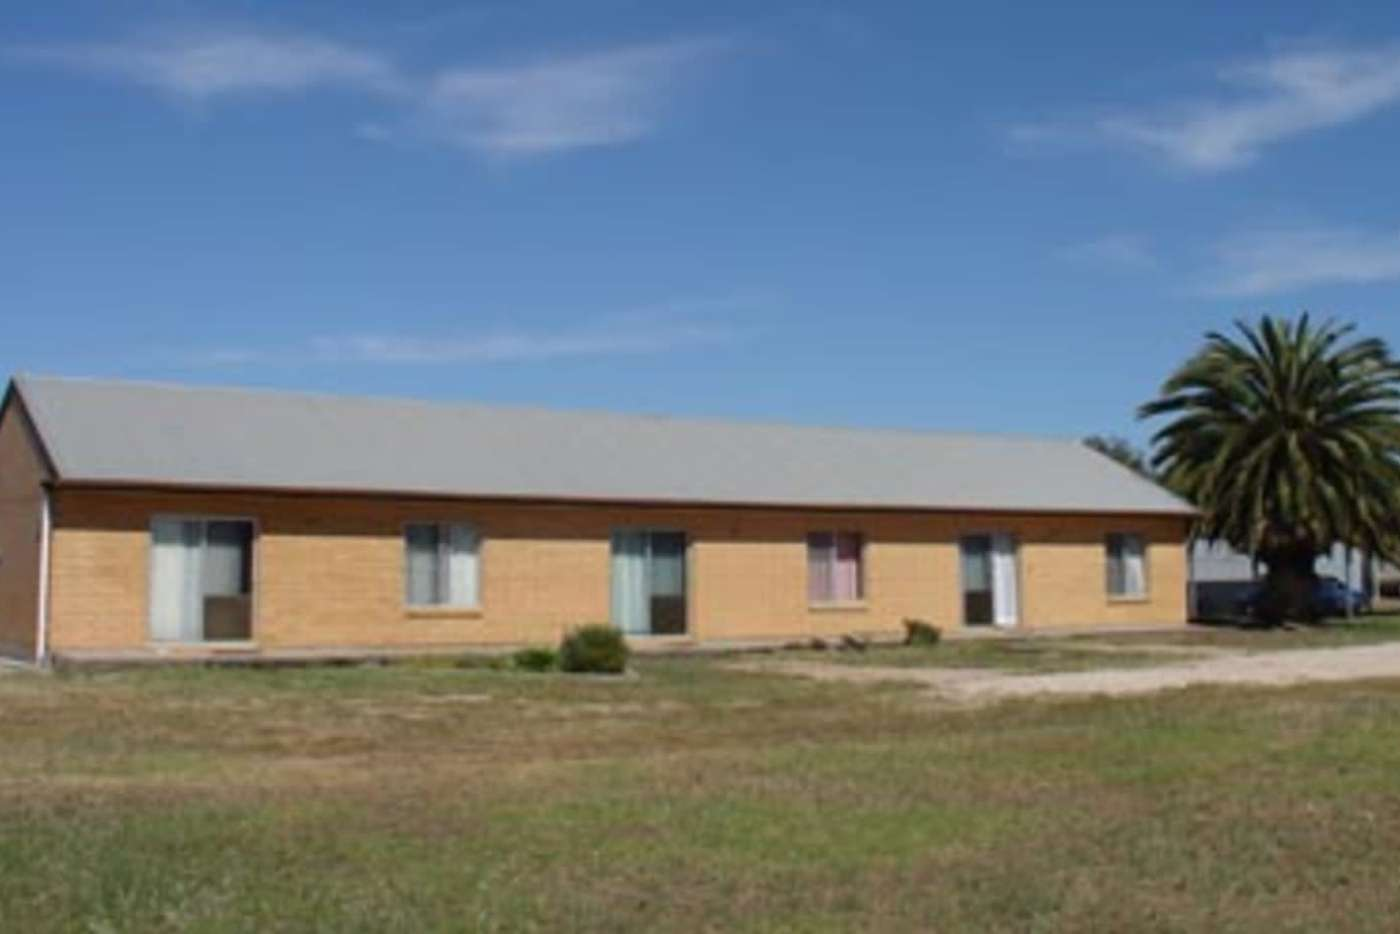 Main view of Homely unit listing, 2/14 Gillerton Terrace, Edithburgh SA 5583